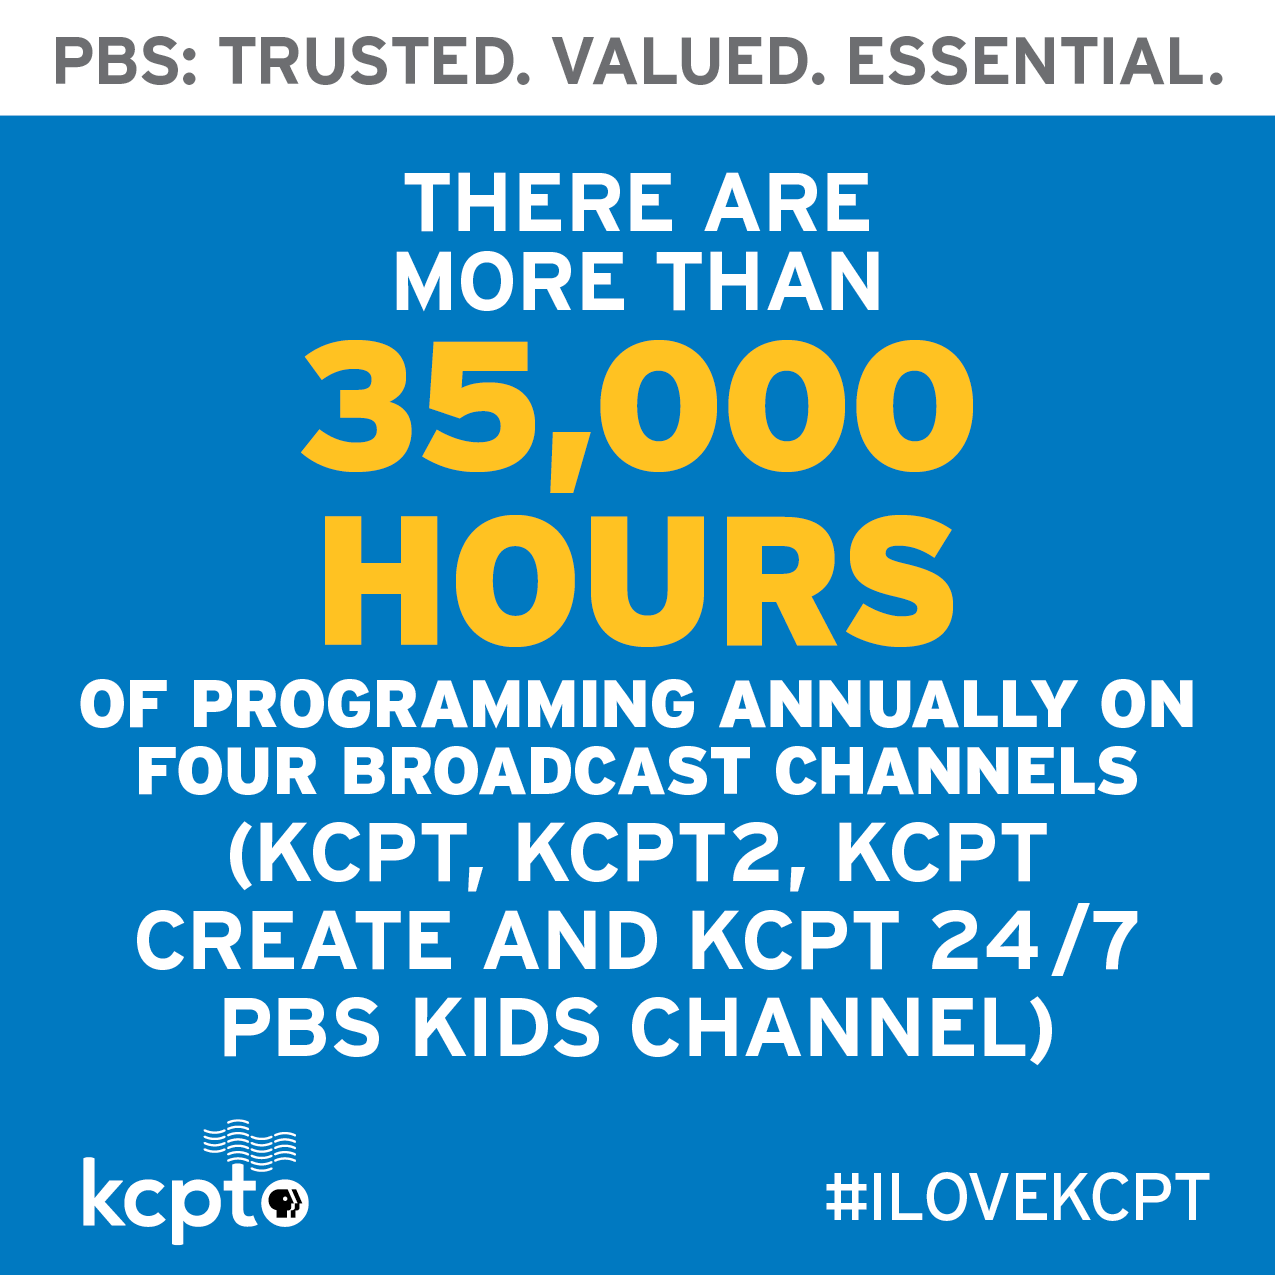 KCPT broadcasts over 35 thousand hours of broadcasting a year.